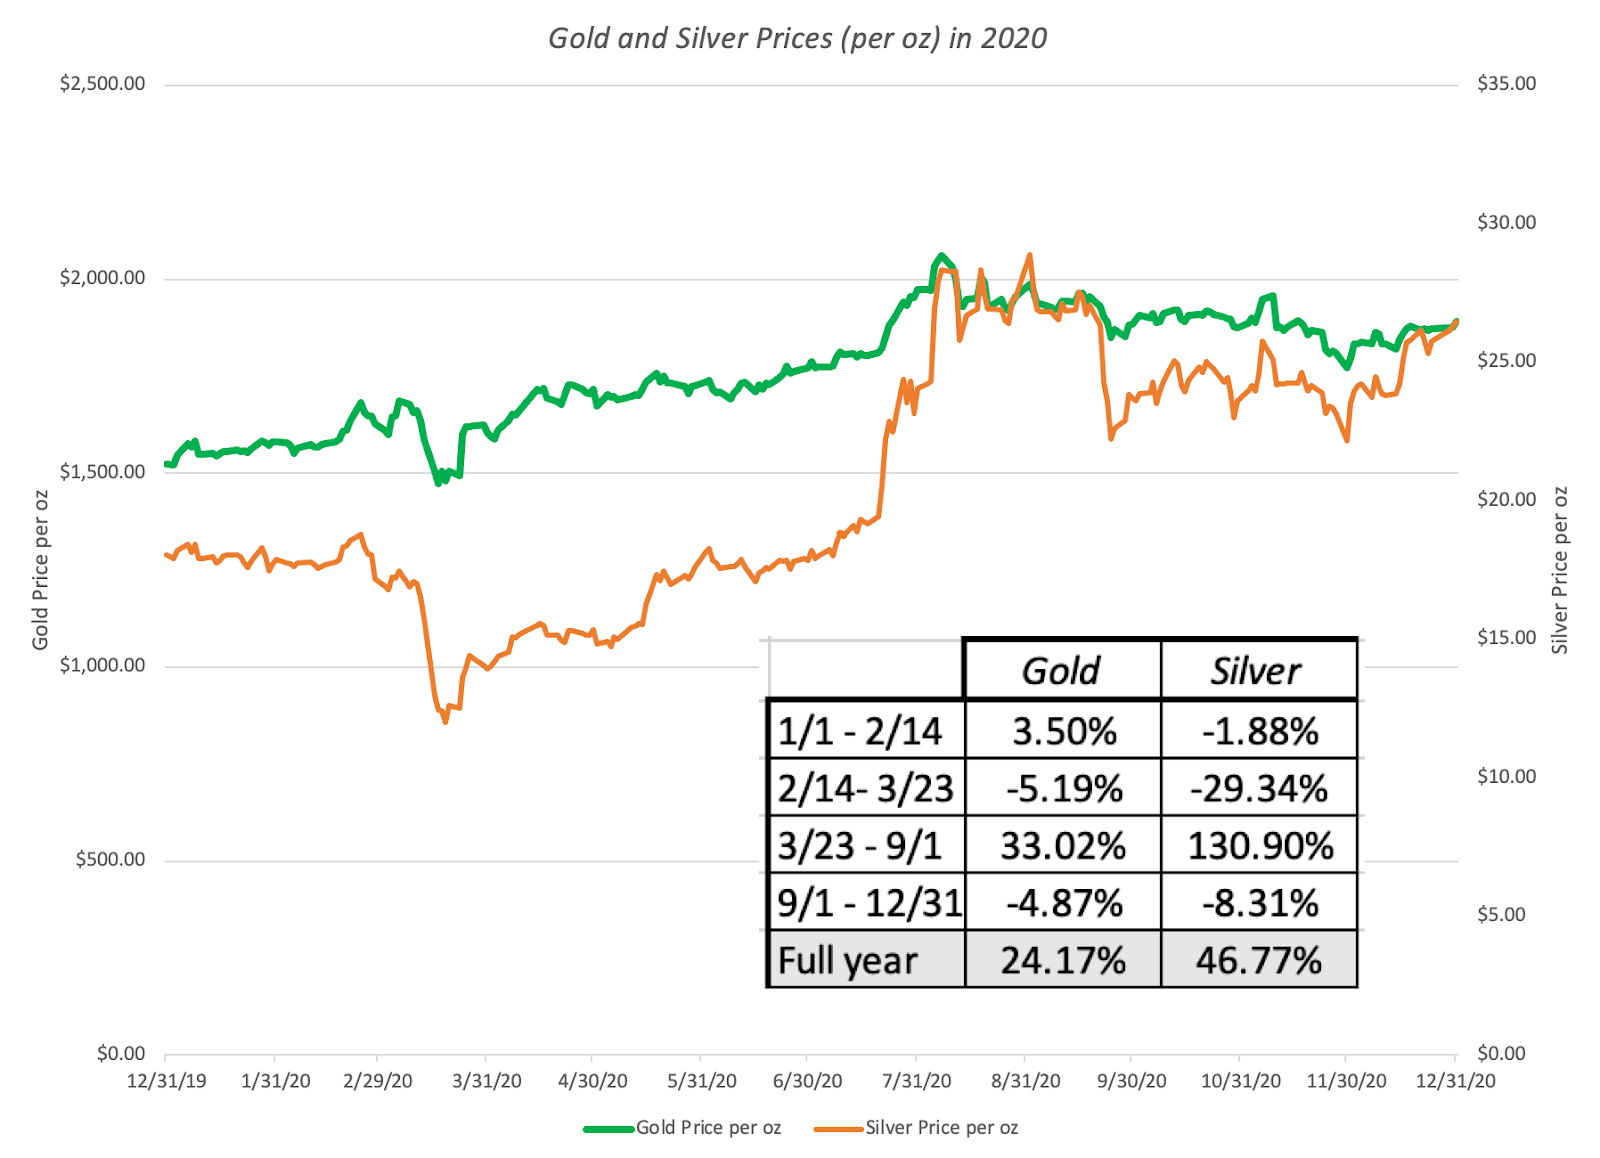 Gold and Silver Prices in 2020